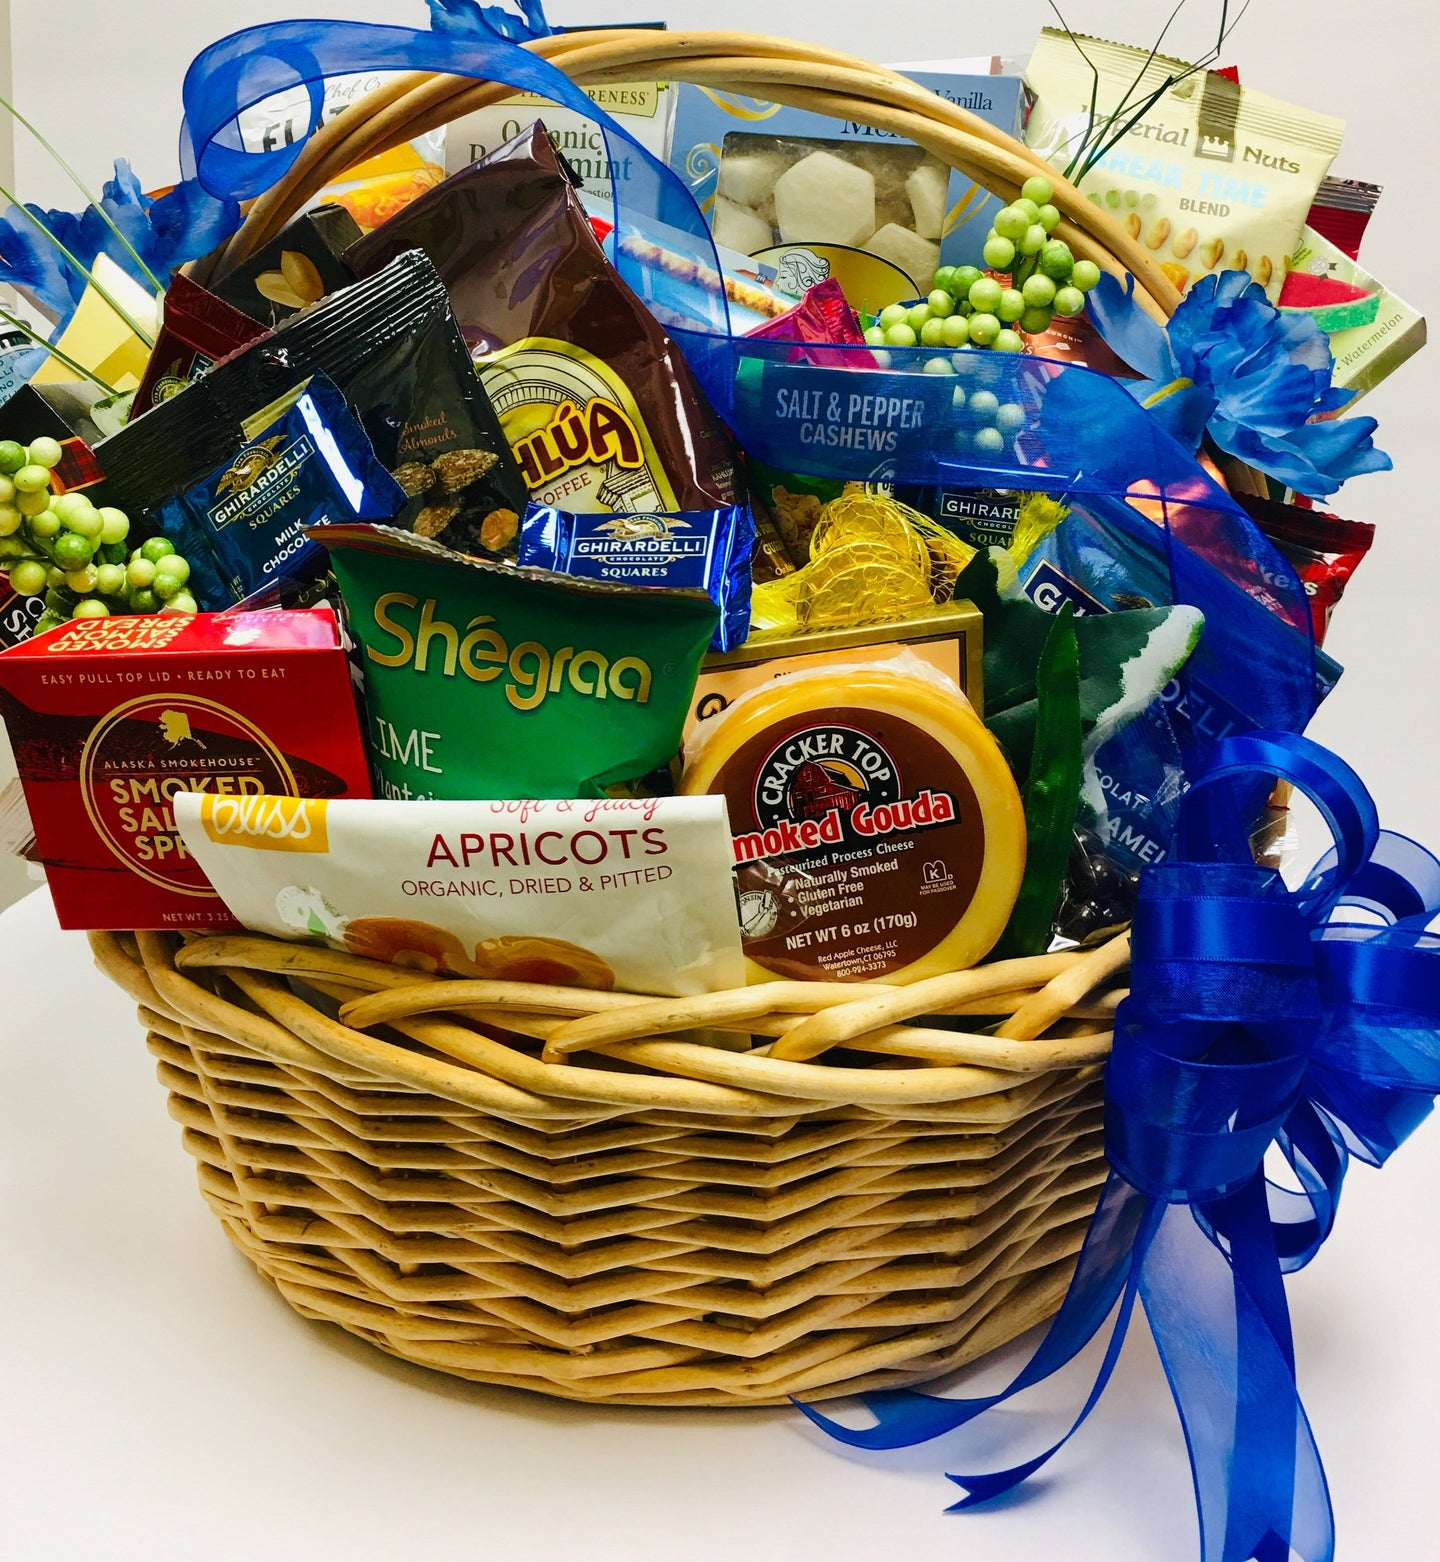 Ultimate Kosher Treats - Gift Baskets By Design SB, Inc.